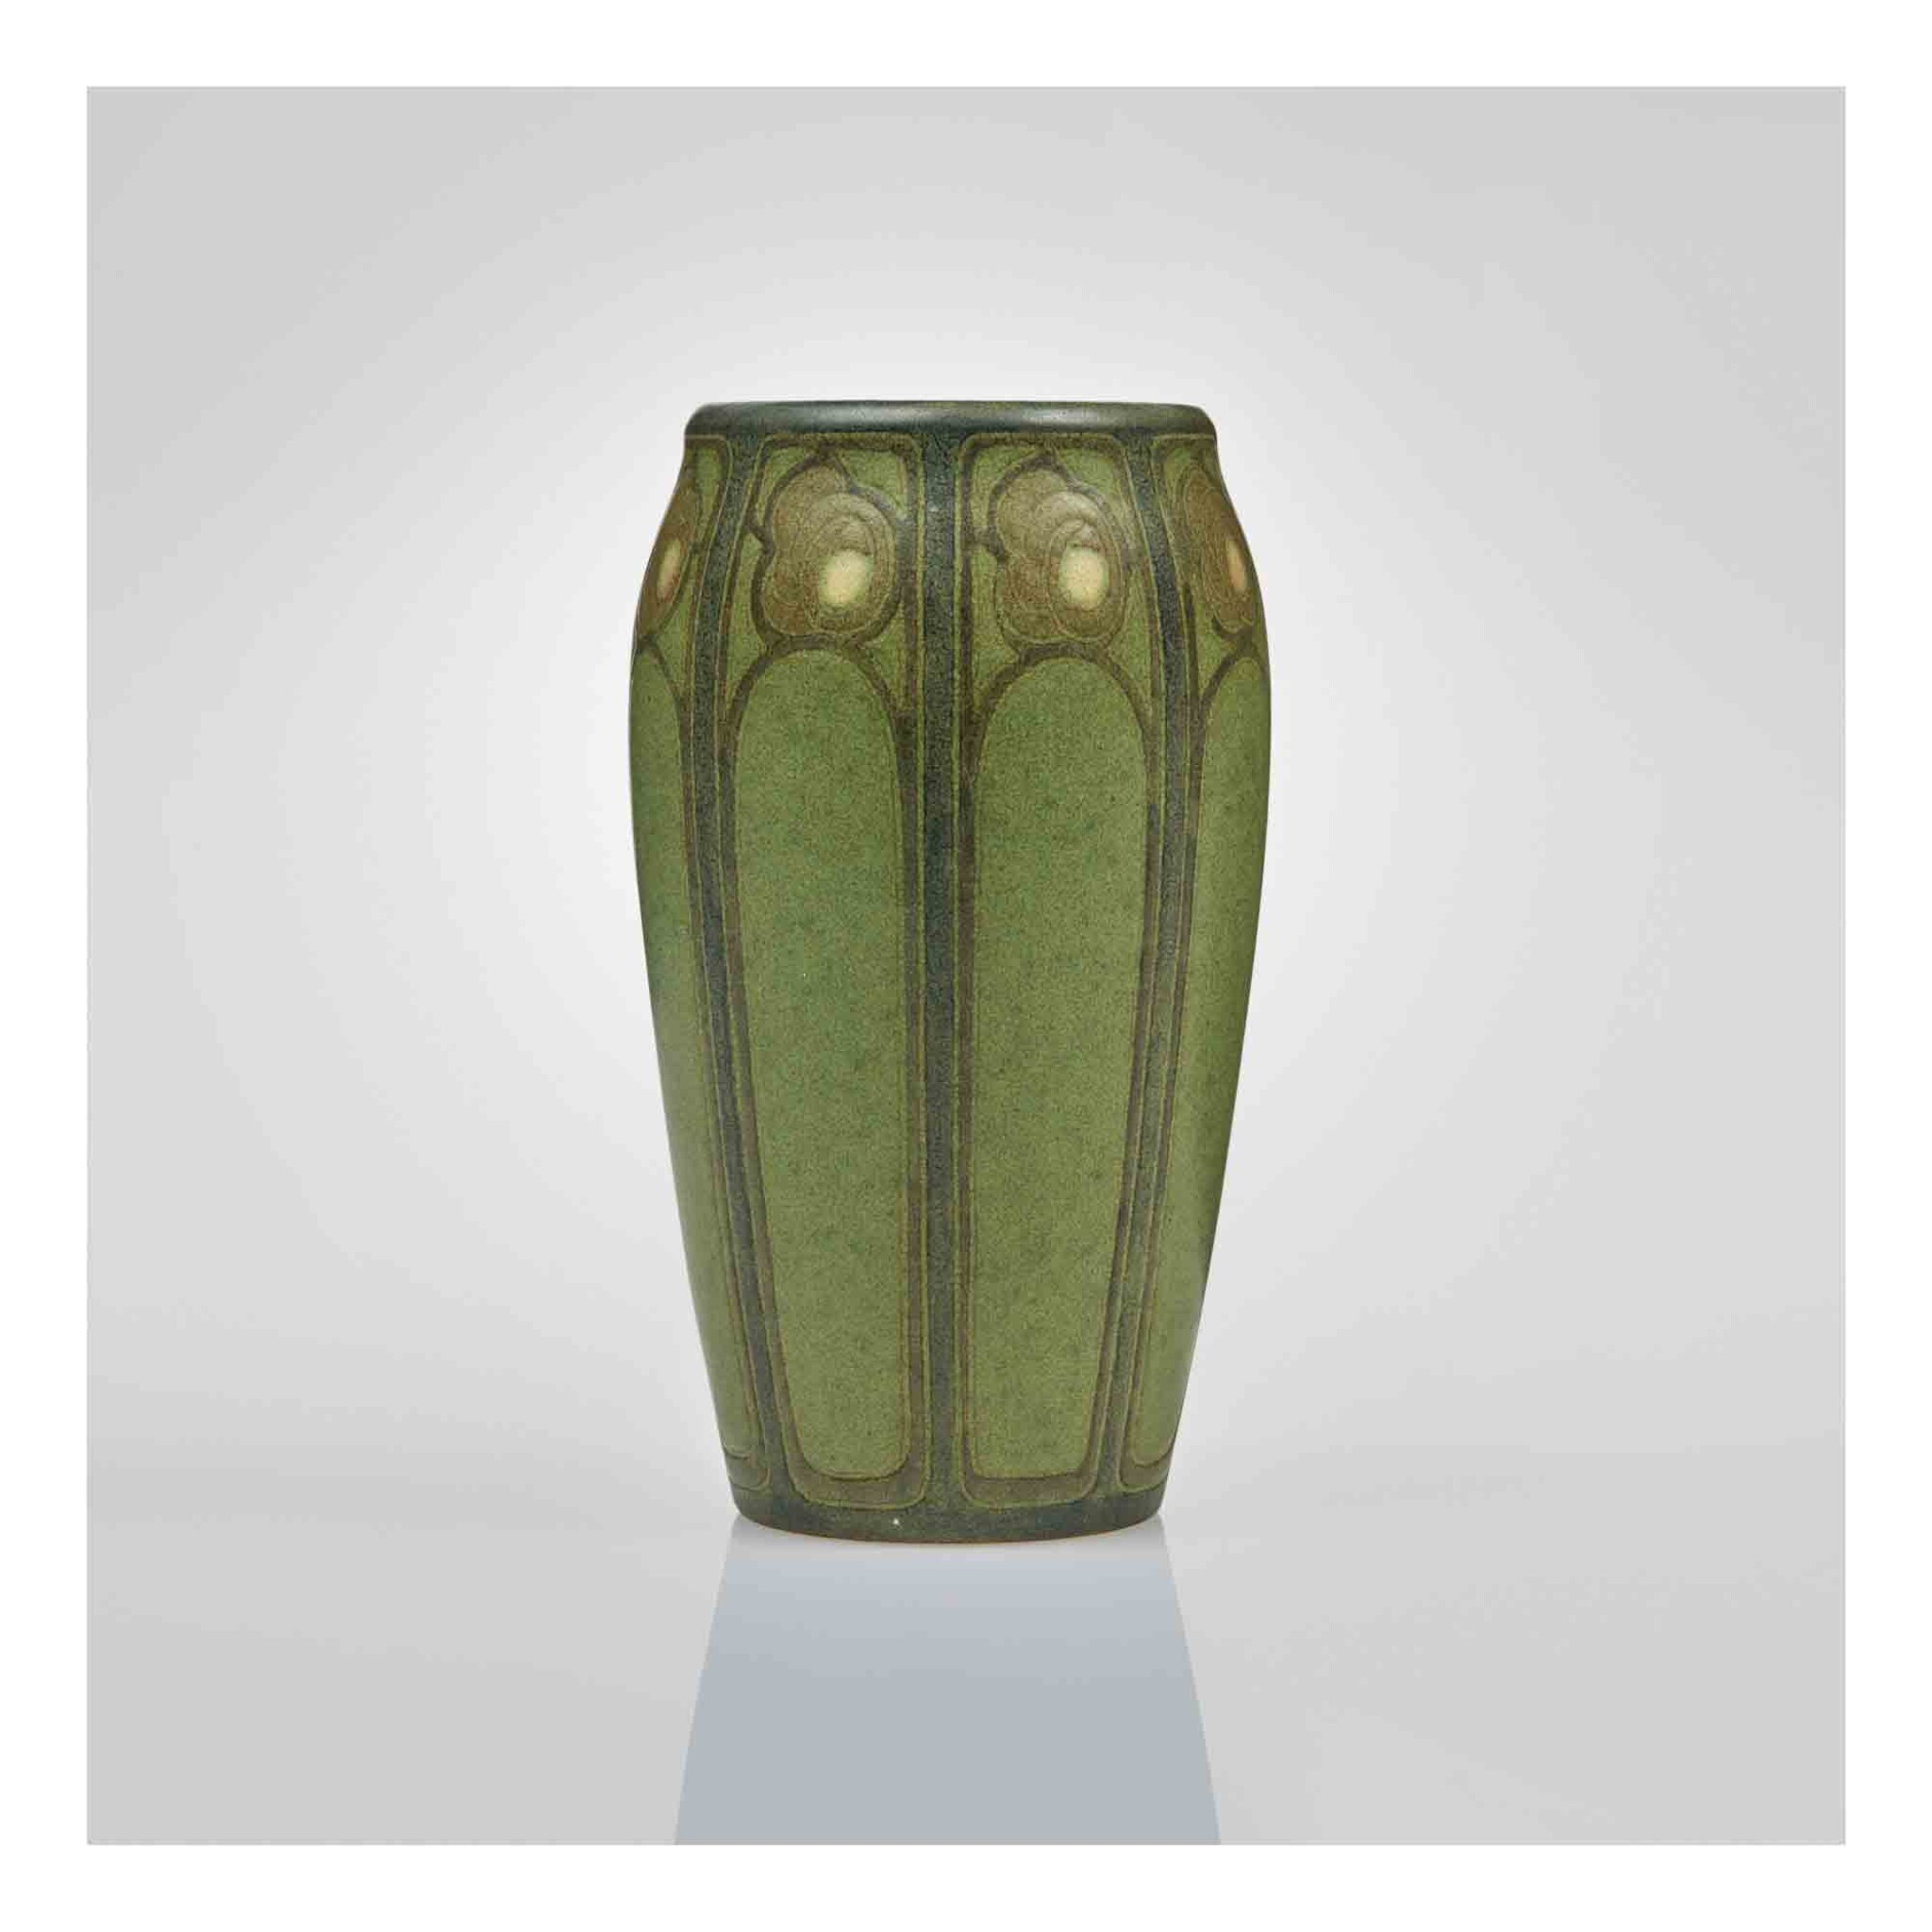 """View 1 of Lot 318. A Rare """"Rose"""" Vase."""